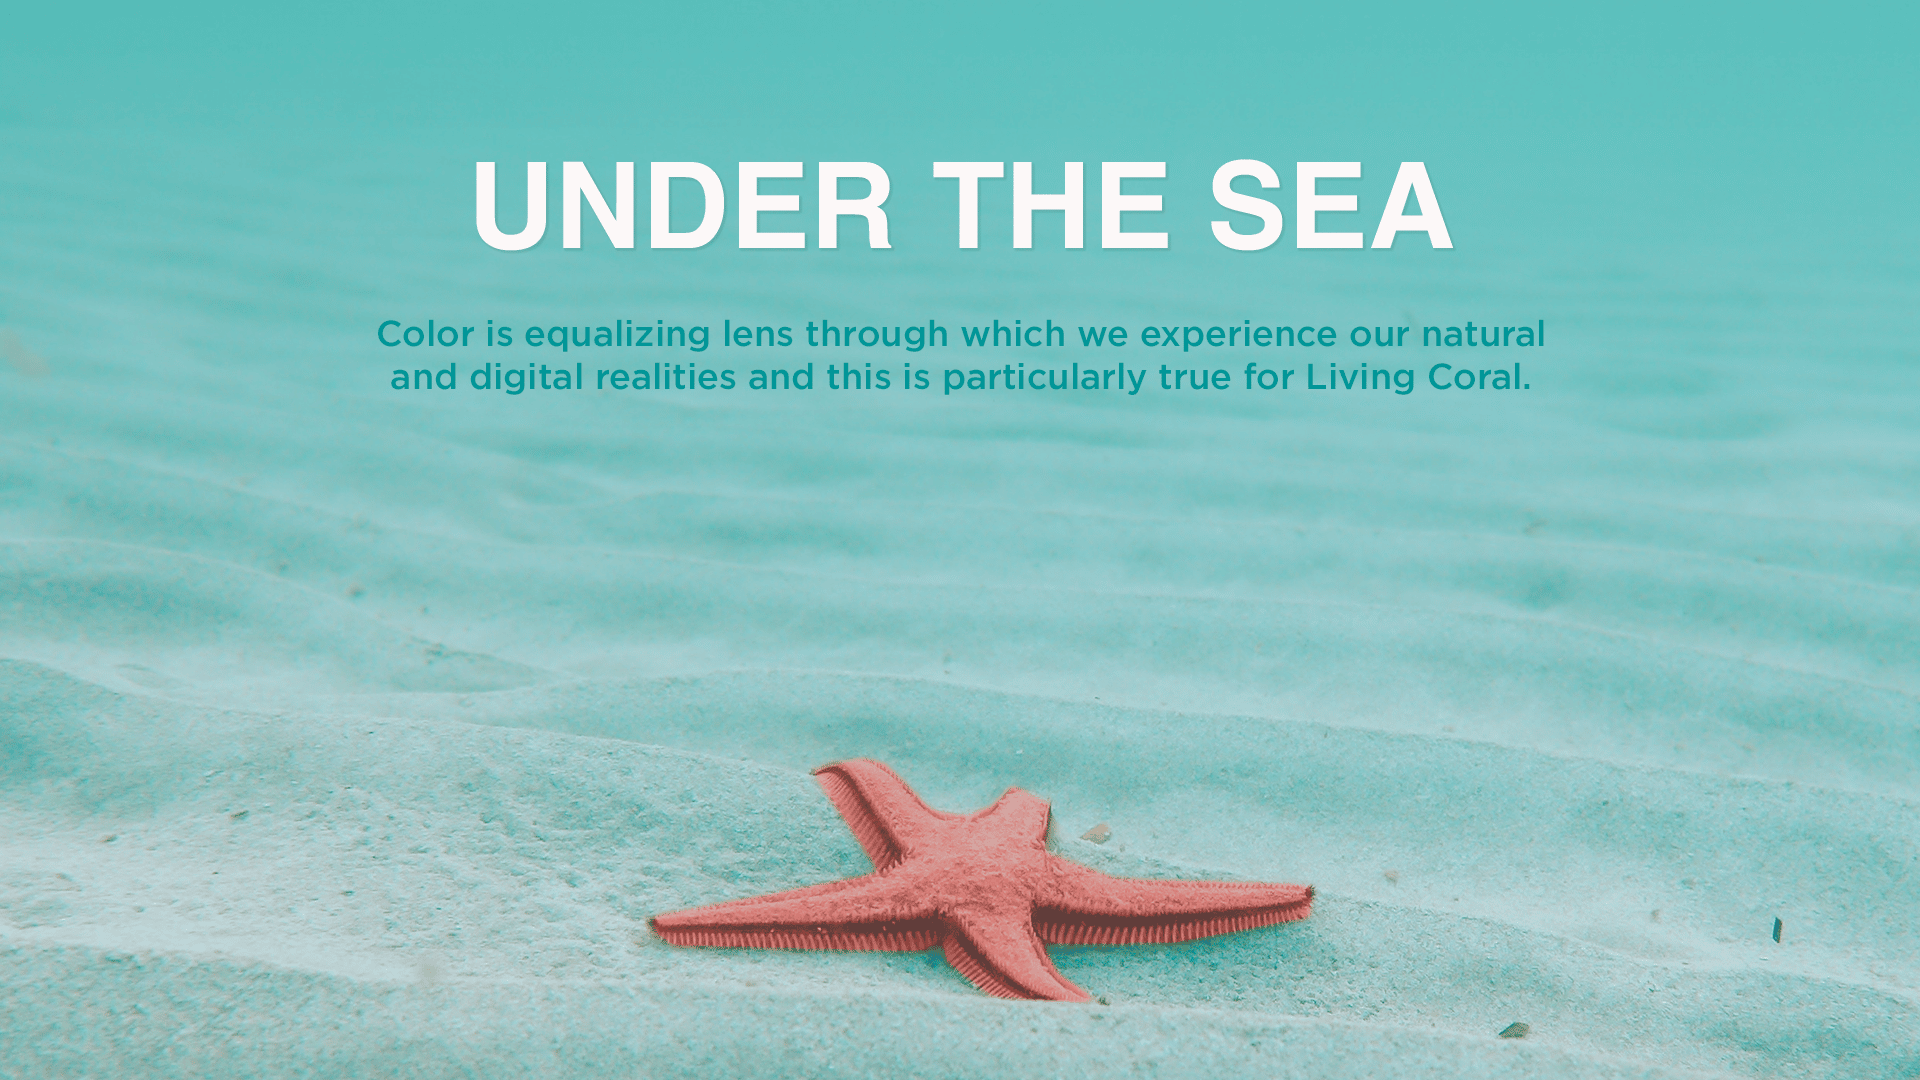 An image of a sea star that on the sea bottom. Implementing living coral colors